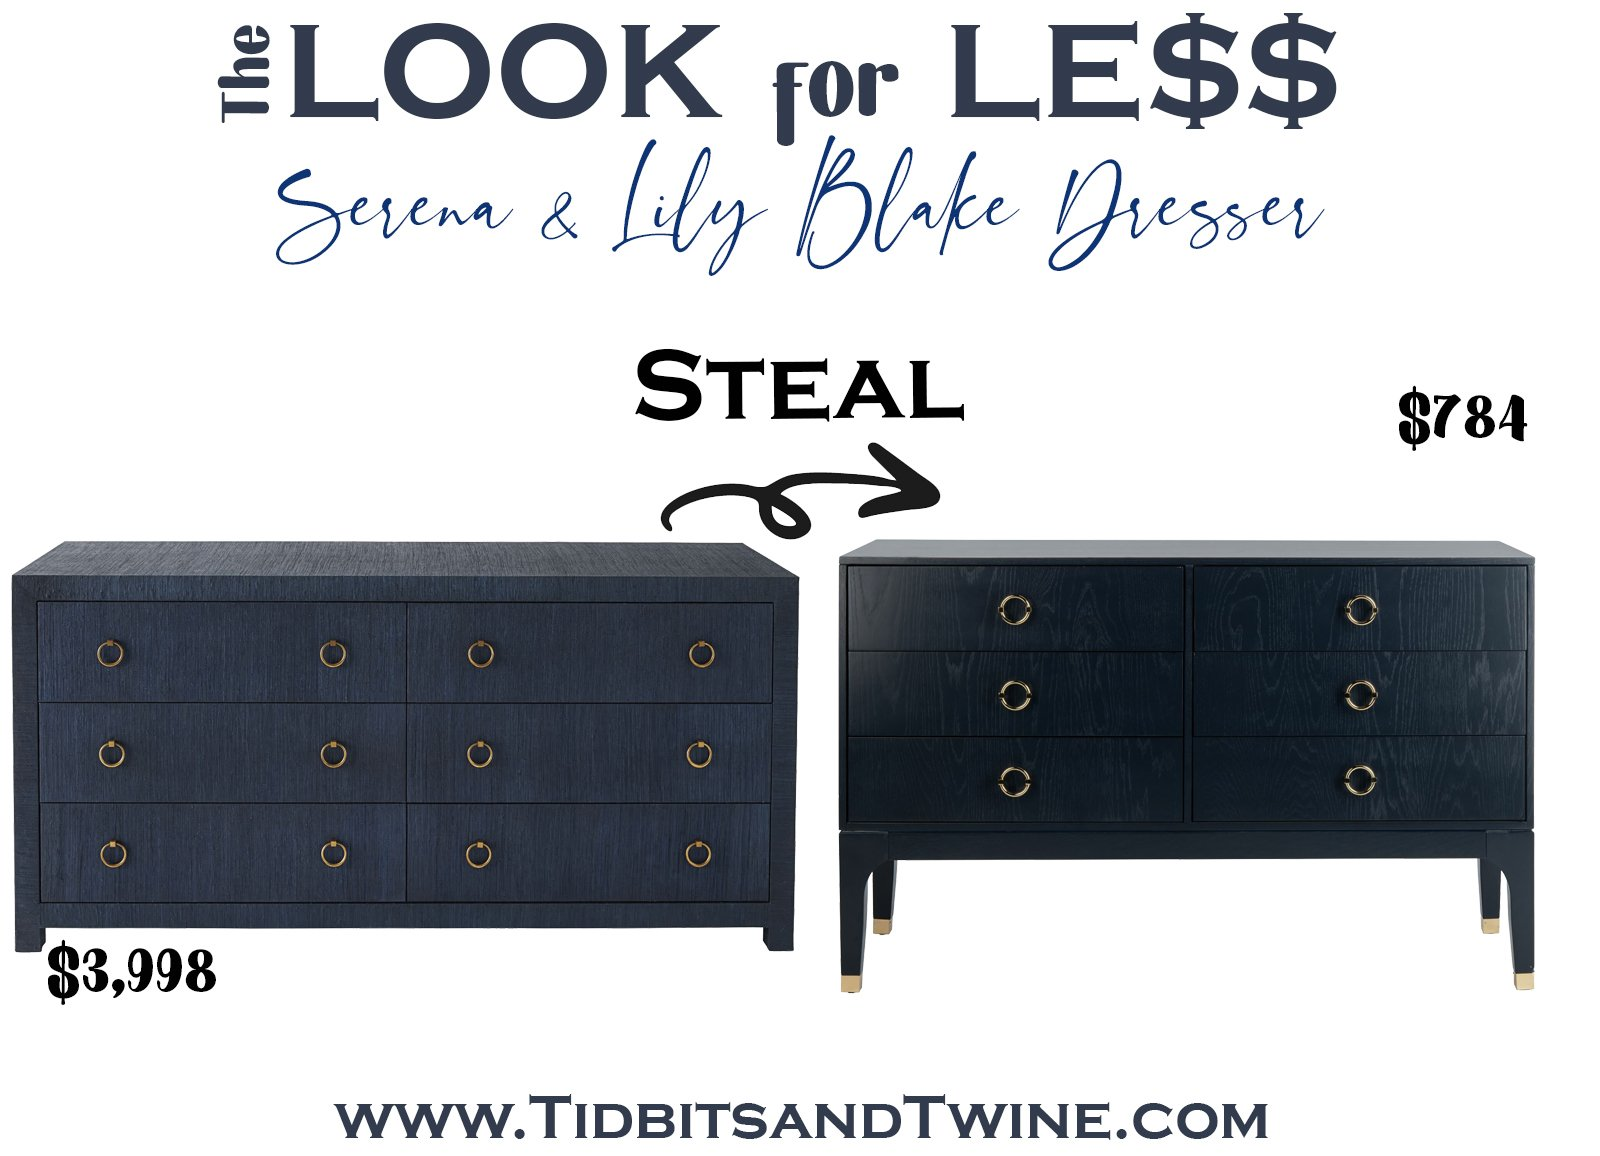 serena and lily navy blue 6 drawer dresser next to a dupe with text overlay saying The Look for Less